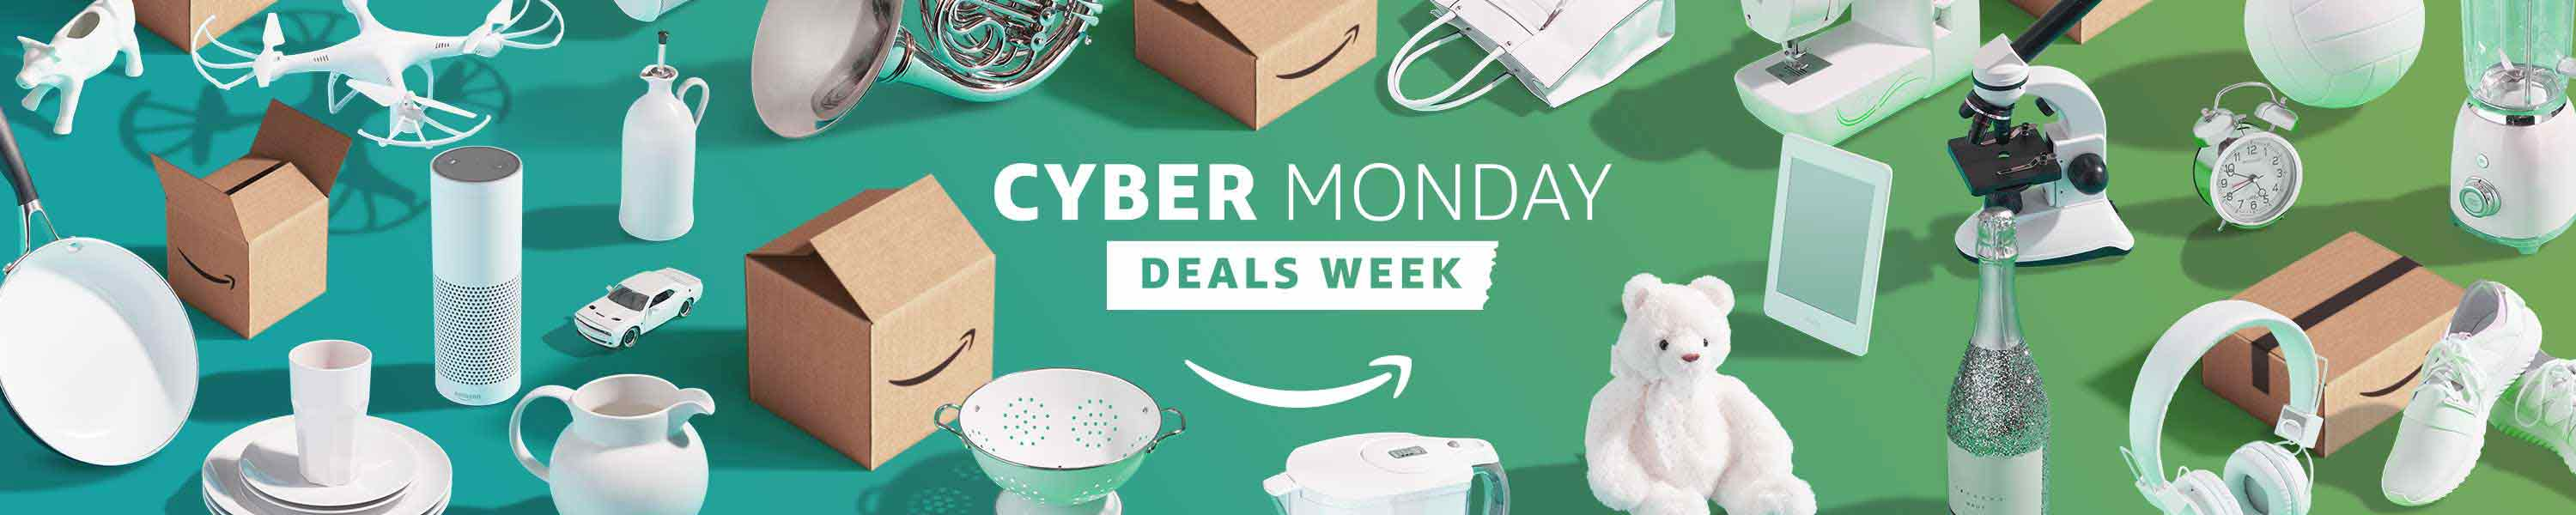 Amazon Cyber Monday Deals Week